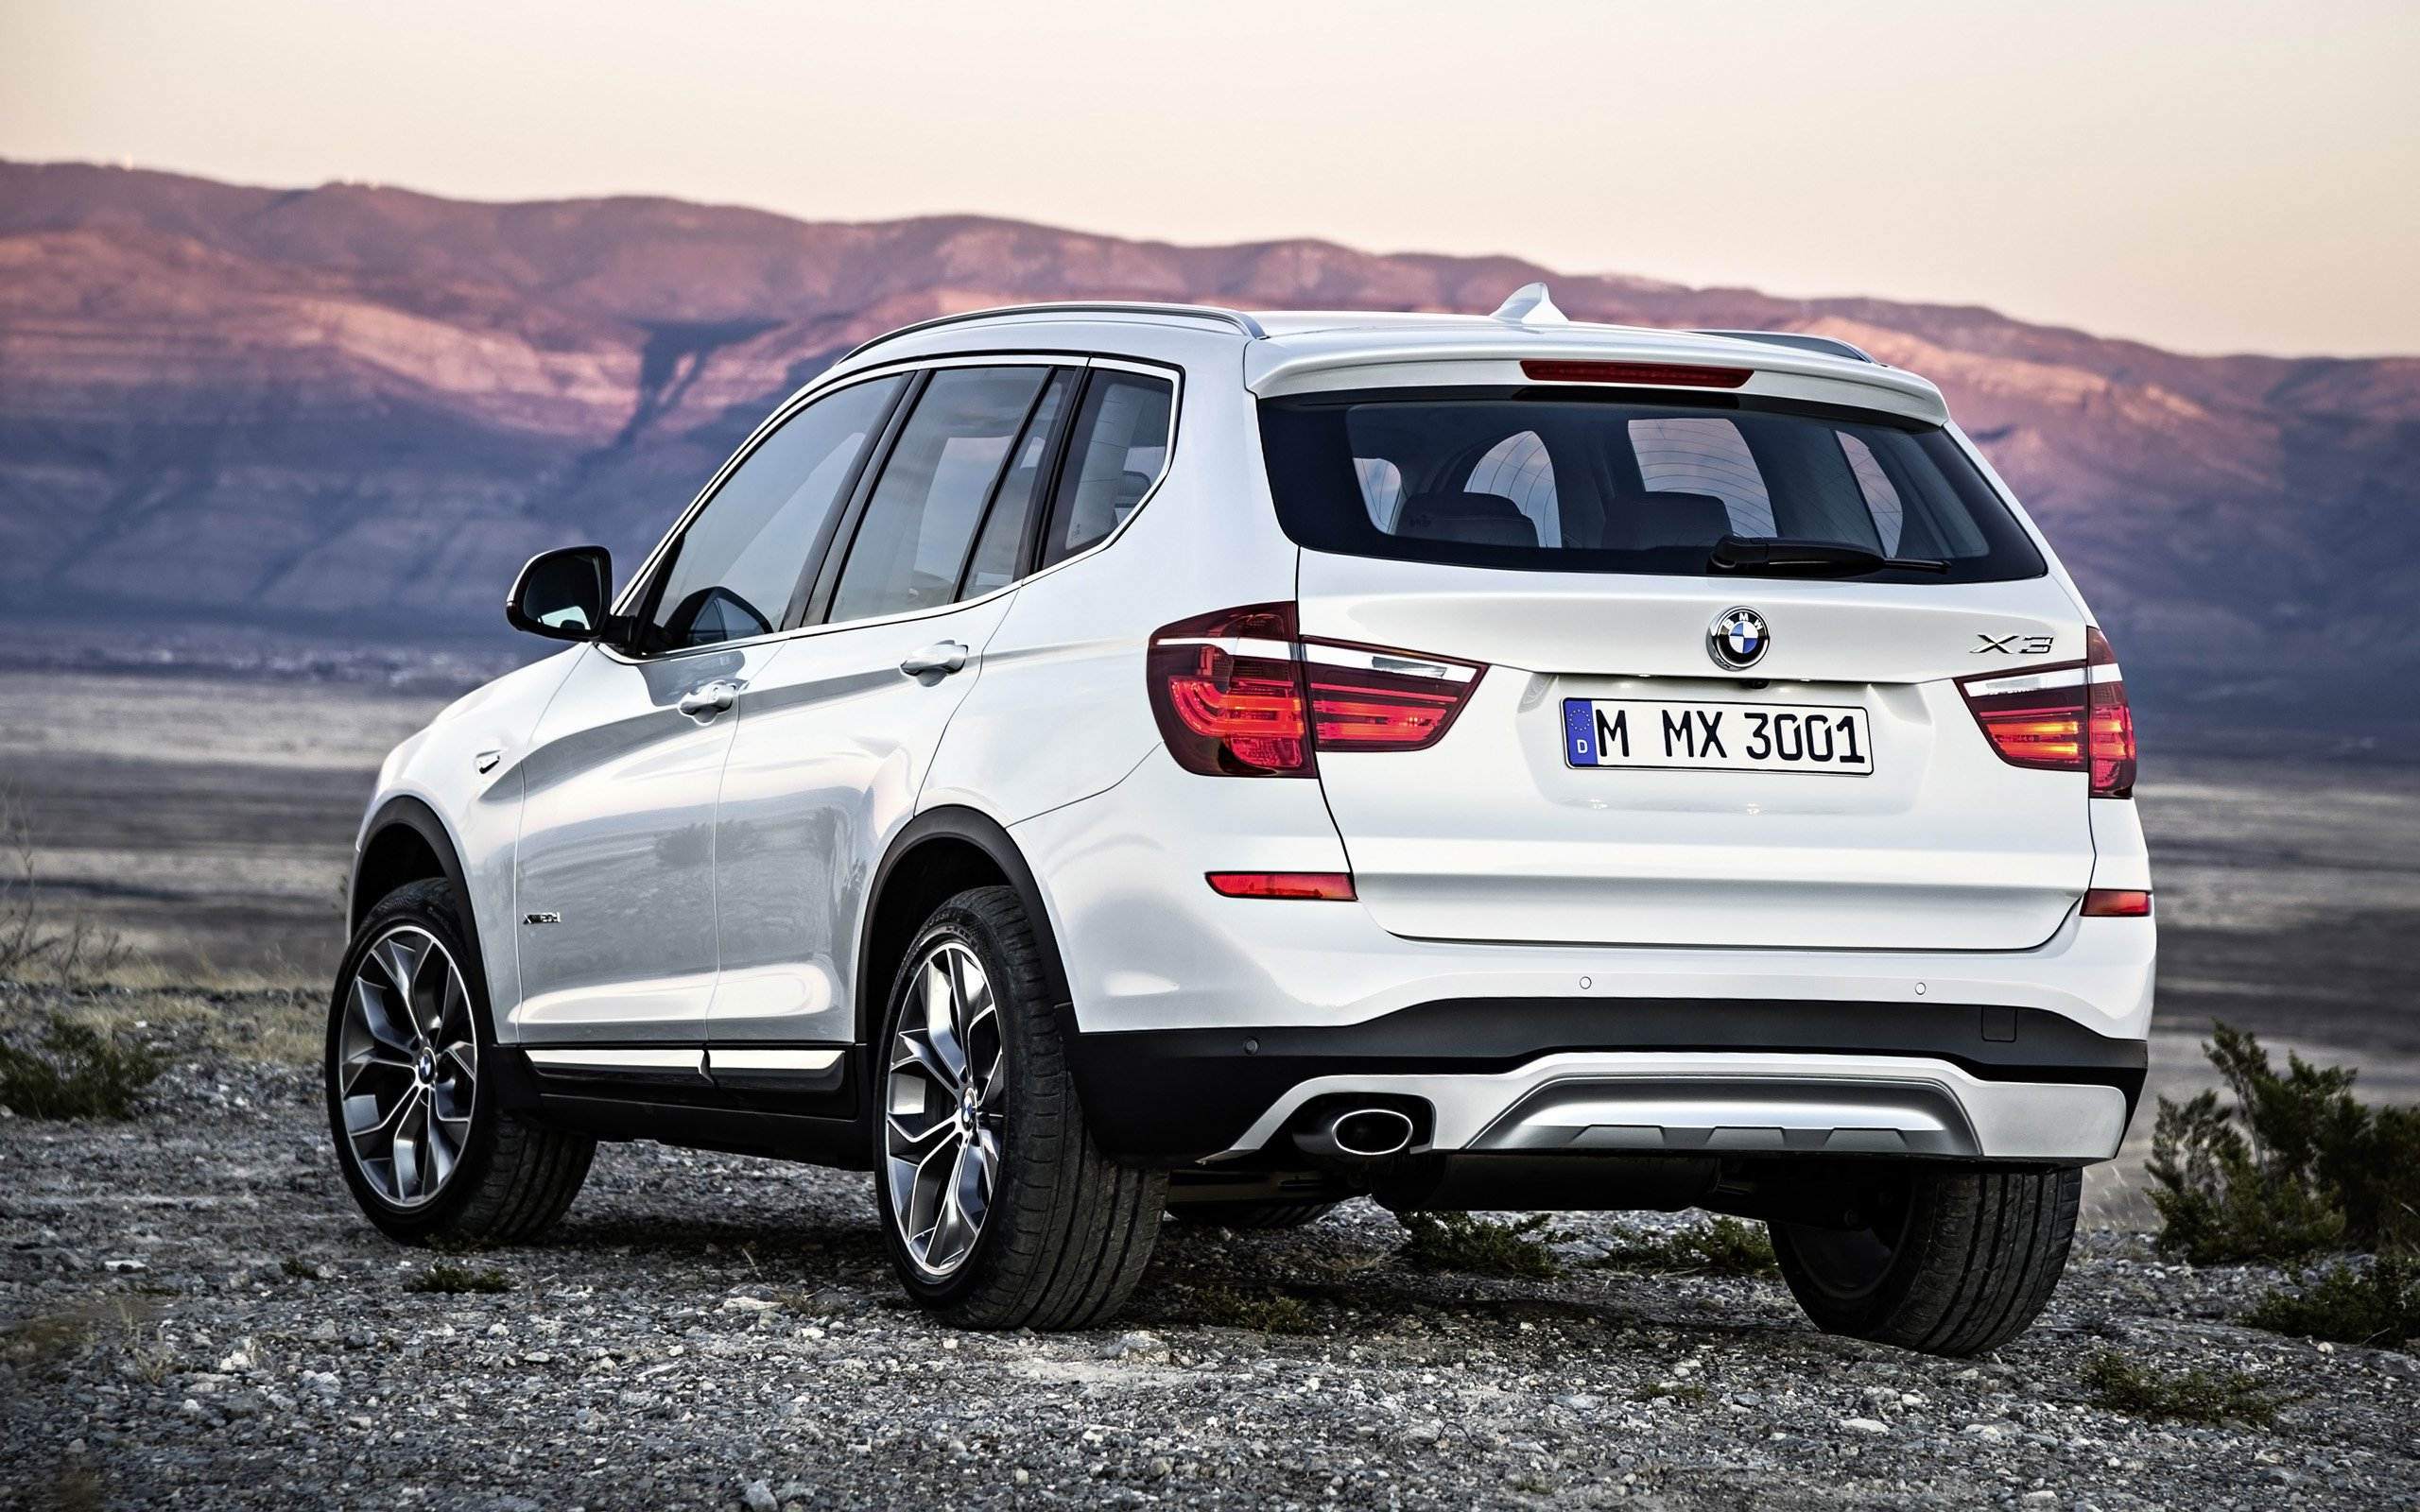 2014 bmw x 3 suv j wallpaper 2560x1600 250080 wallpaperup. Black Bedroom Furniture Sets. Home Design Ideas